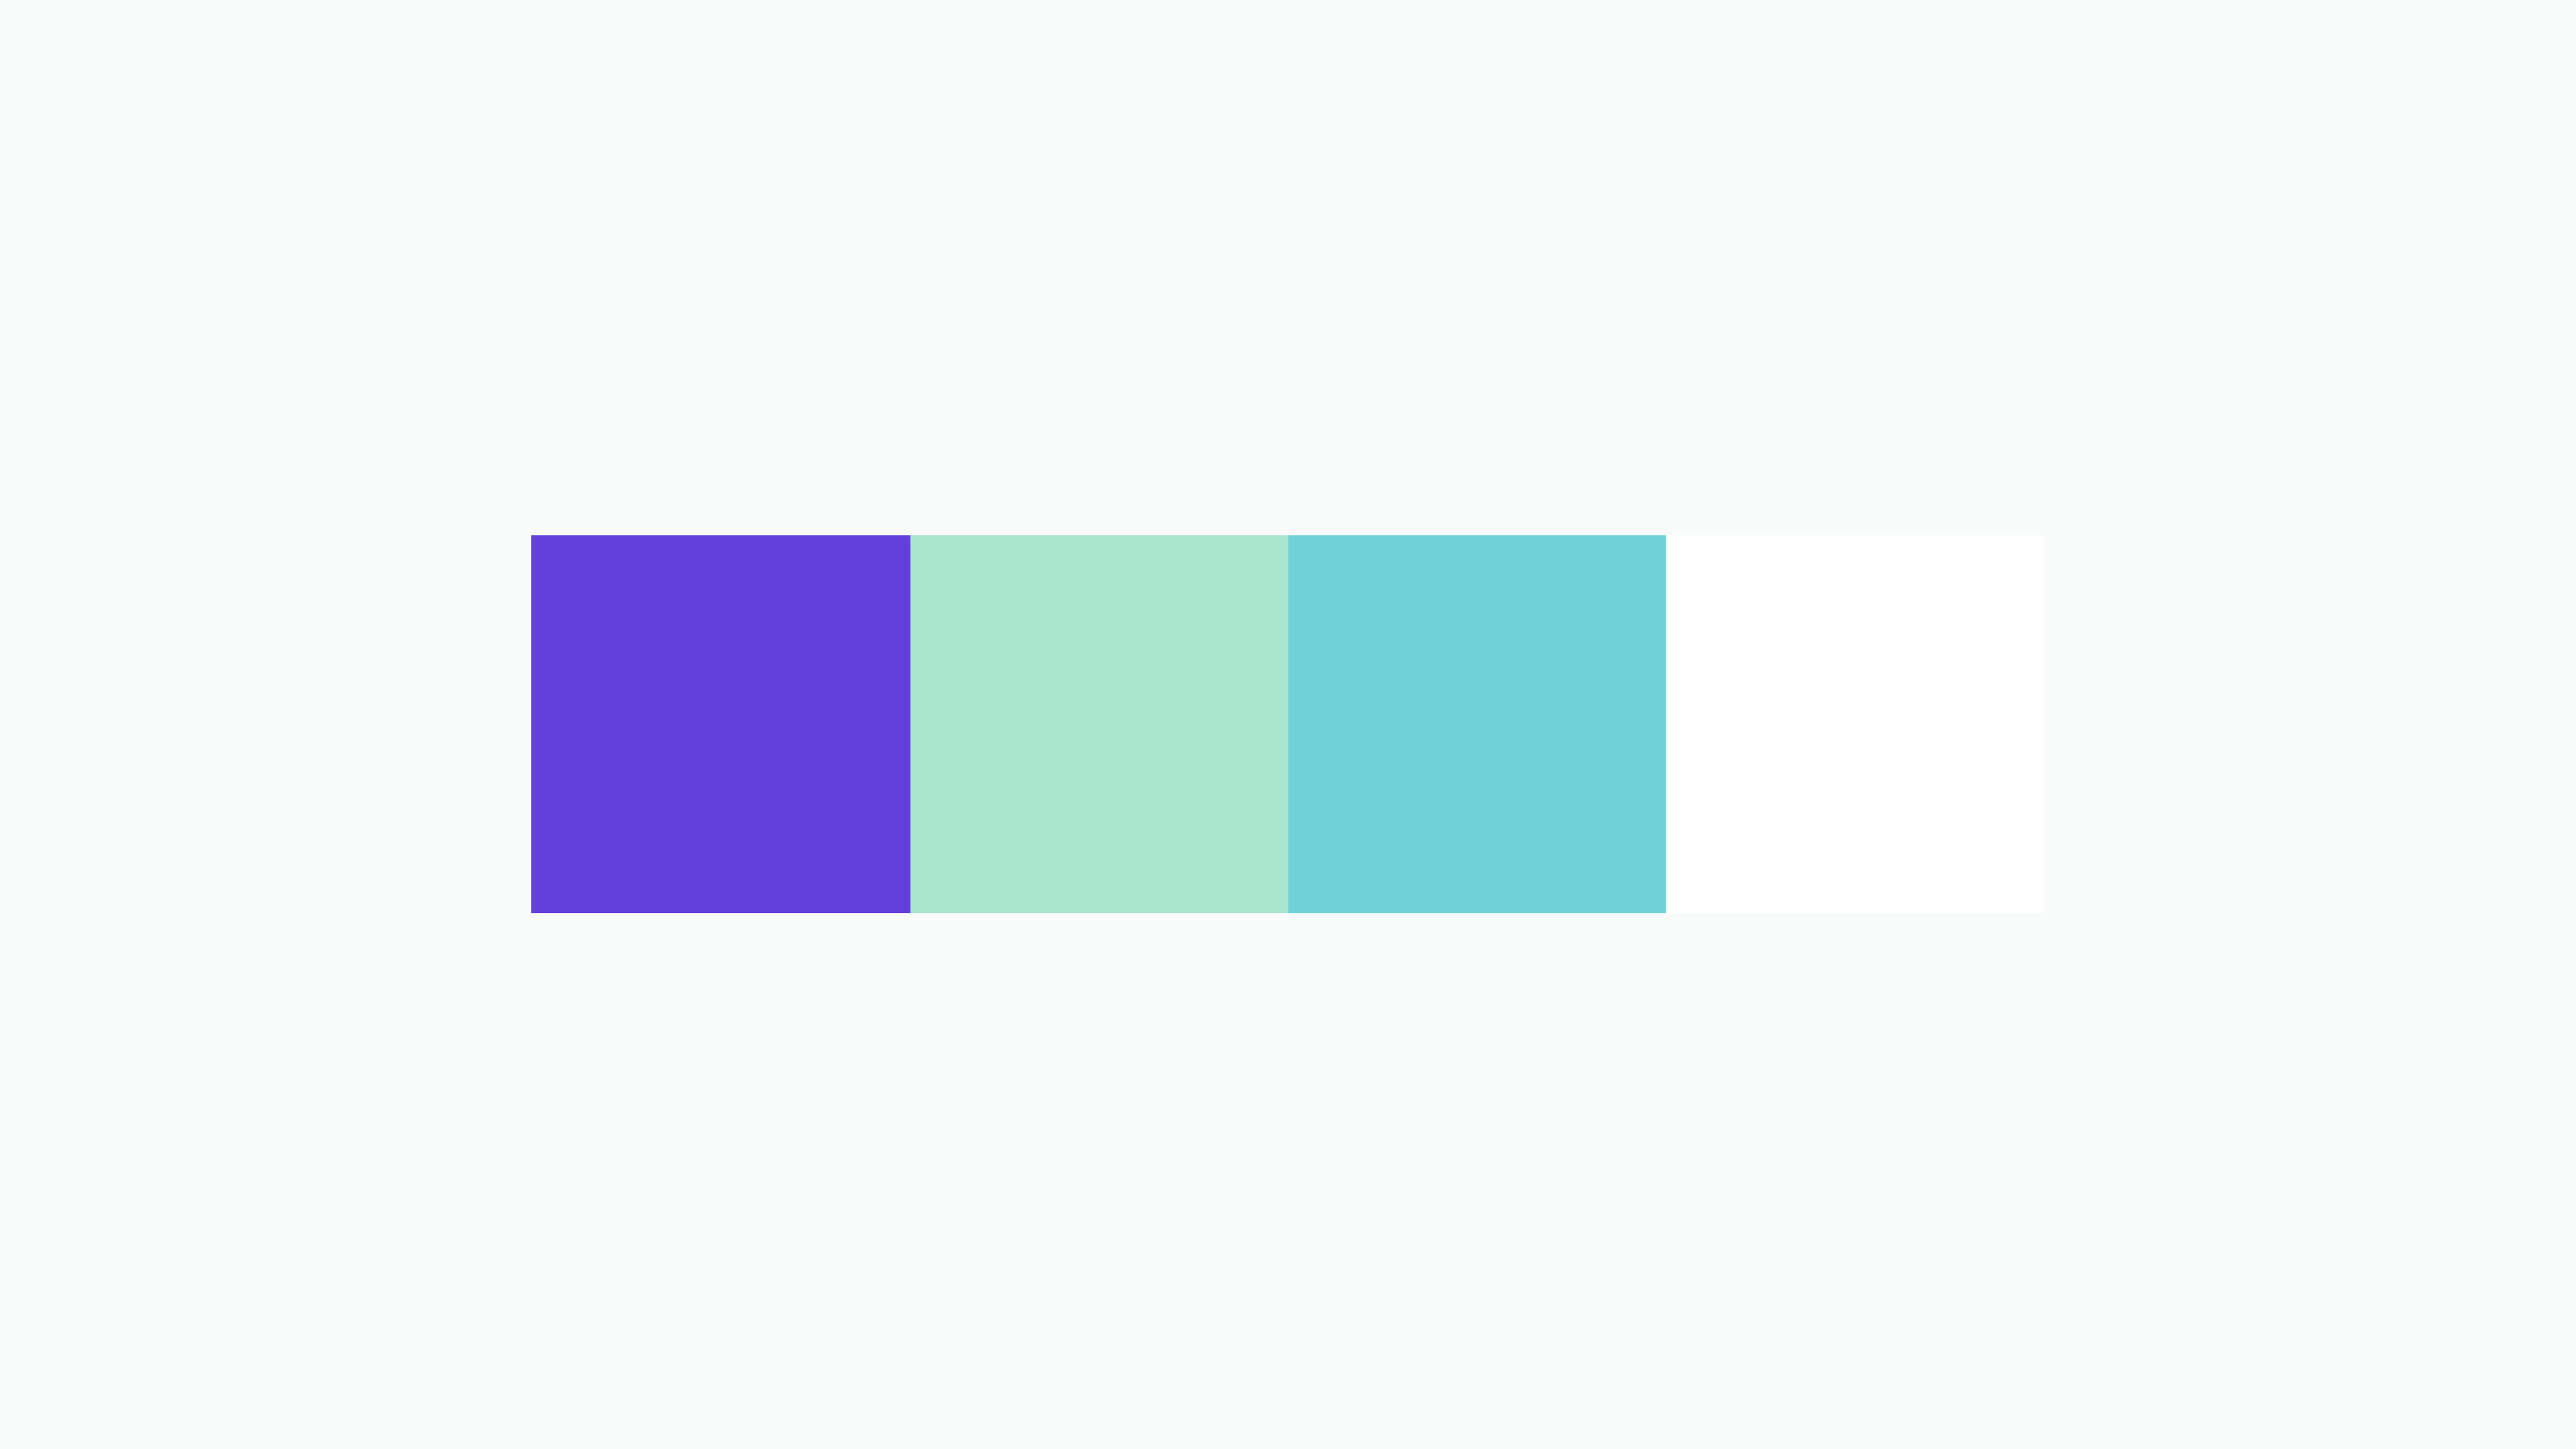 Color scheme of FastCart's platform and brand identity